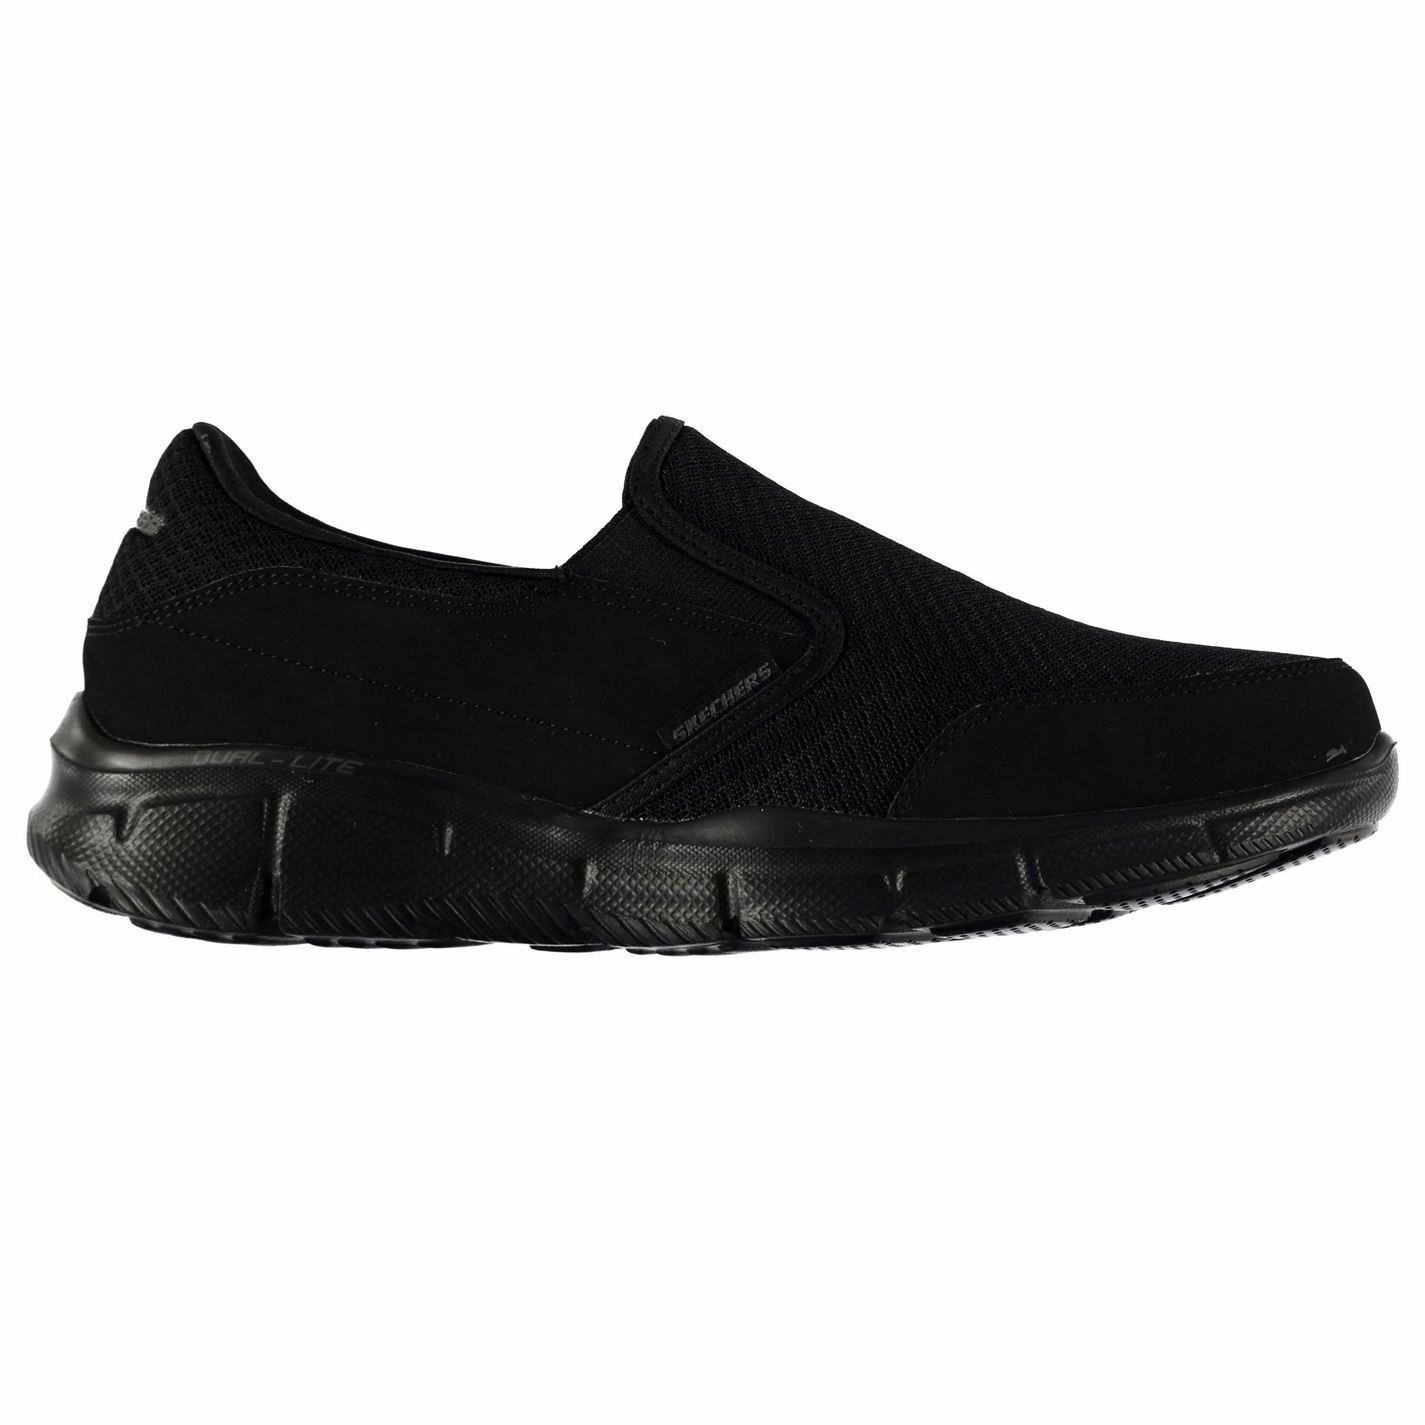 Skechers Equalizer Persistent Trainers Mens Black Sports Shoes Sneakers Footwear Brand discount